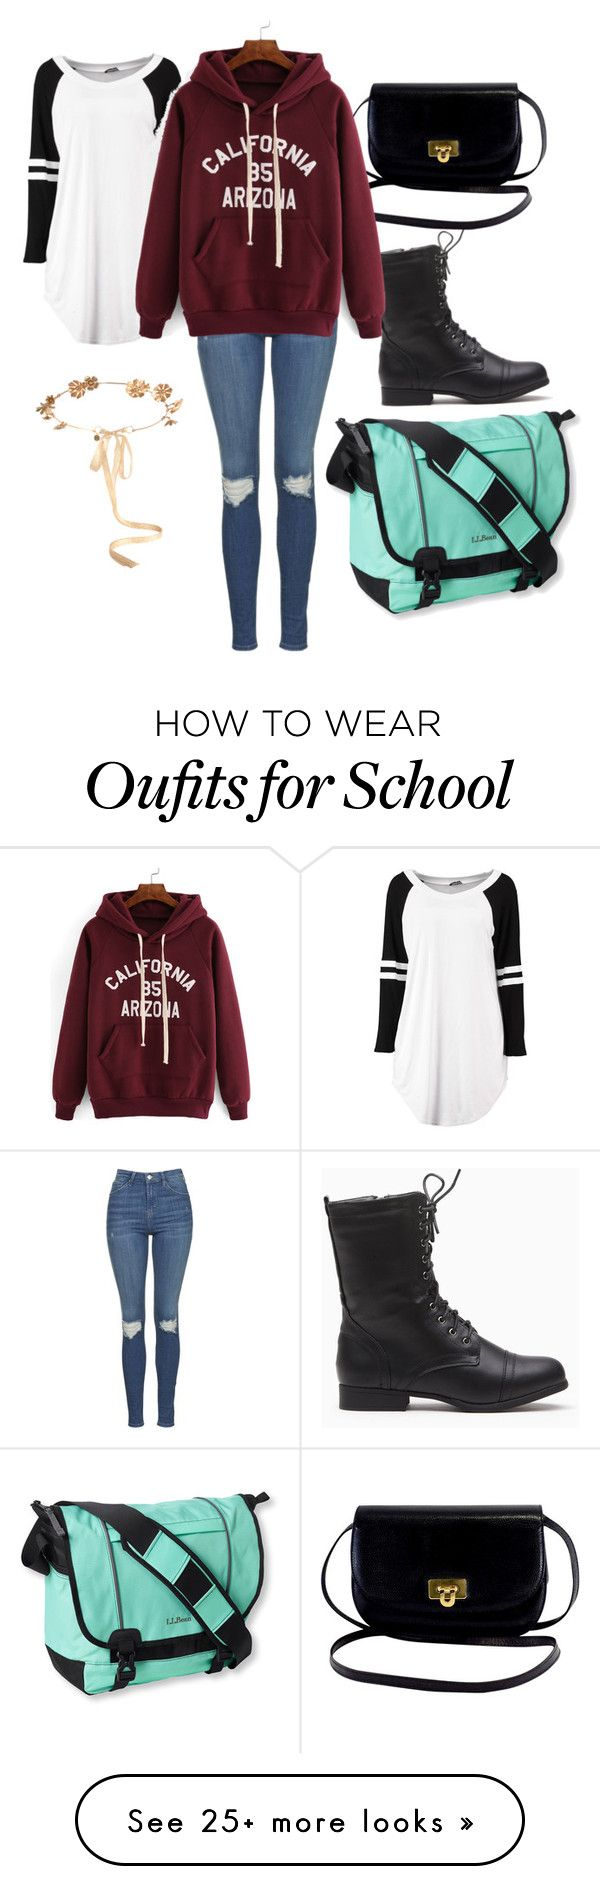 """School wear."" by diamondkitty26 on Polyvore featuring L.L.Bean, Topshop and Eugenia Kim"